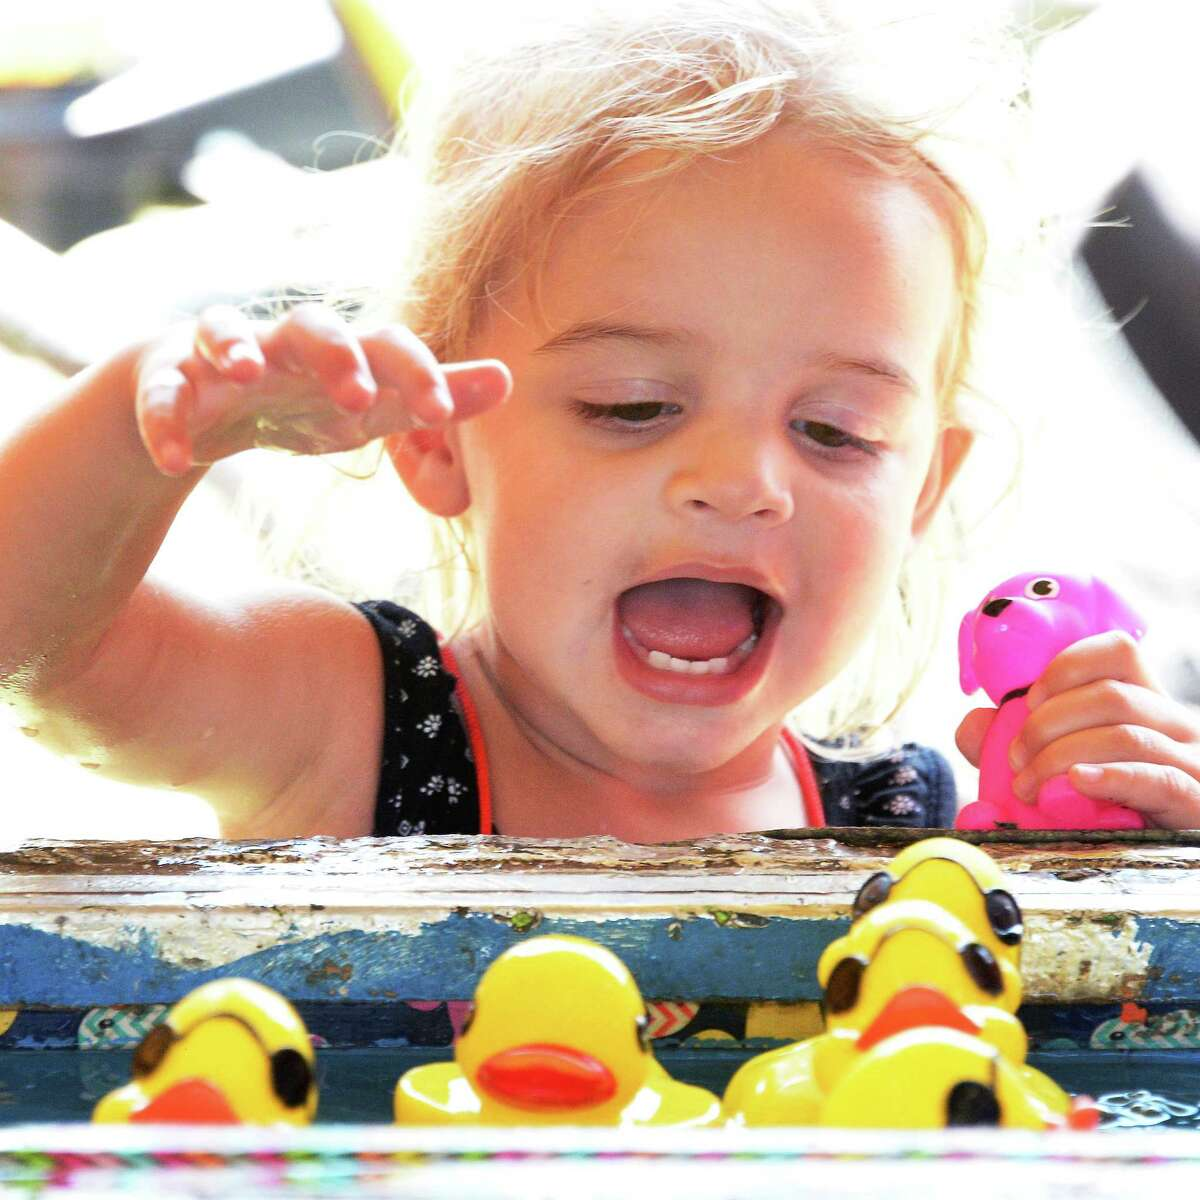 Two-year-old Sasha Bahadori of St. George, Kansas keeps cool at the Duck Pond game at the Saratoga County Fair Tuesday July 18, 2017 in Ballston Spa, NY. (John Carl D'Annibale / Times Union)